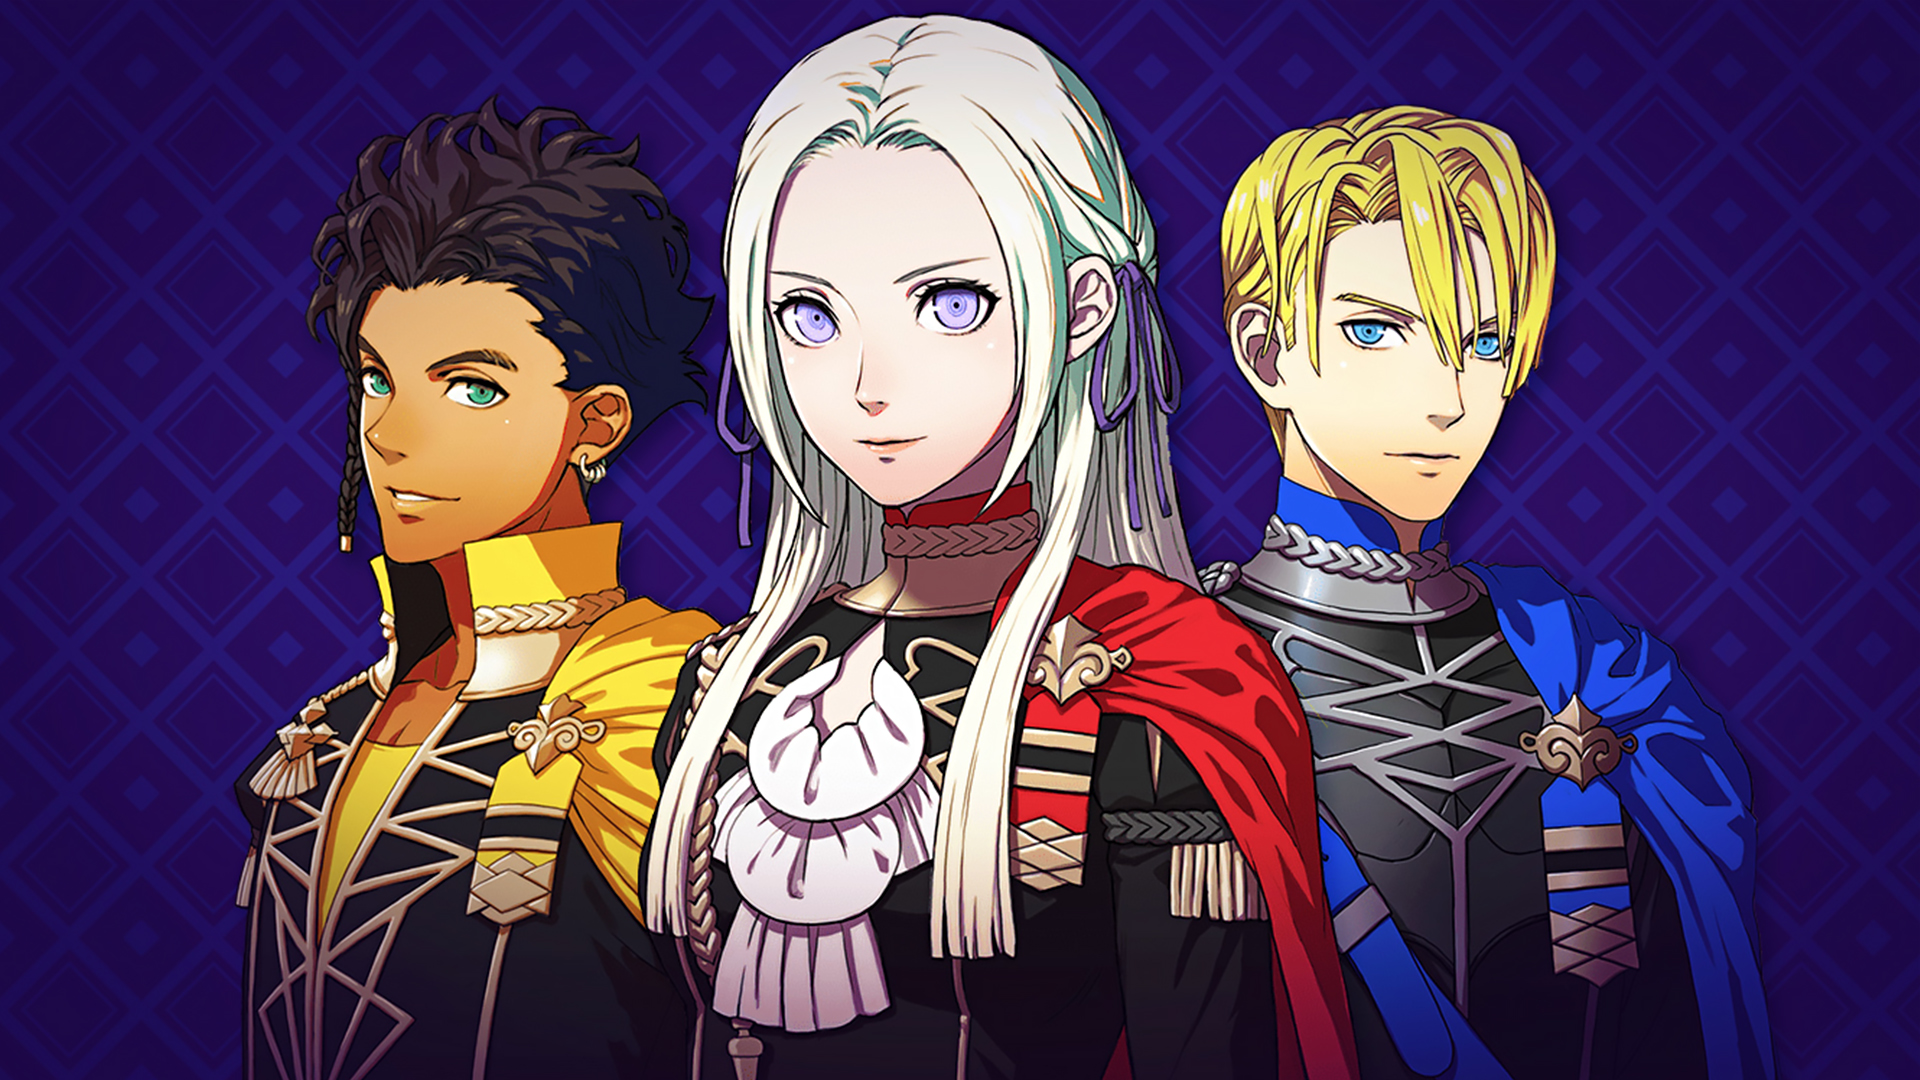 Fire Emblem Three Houses Wallpaper Full Hd Id 3574